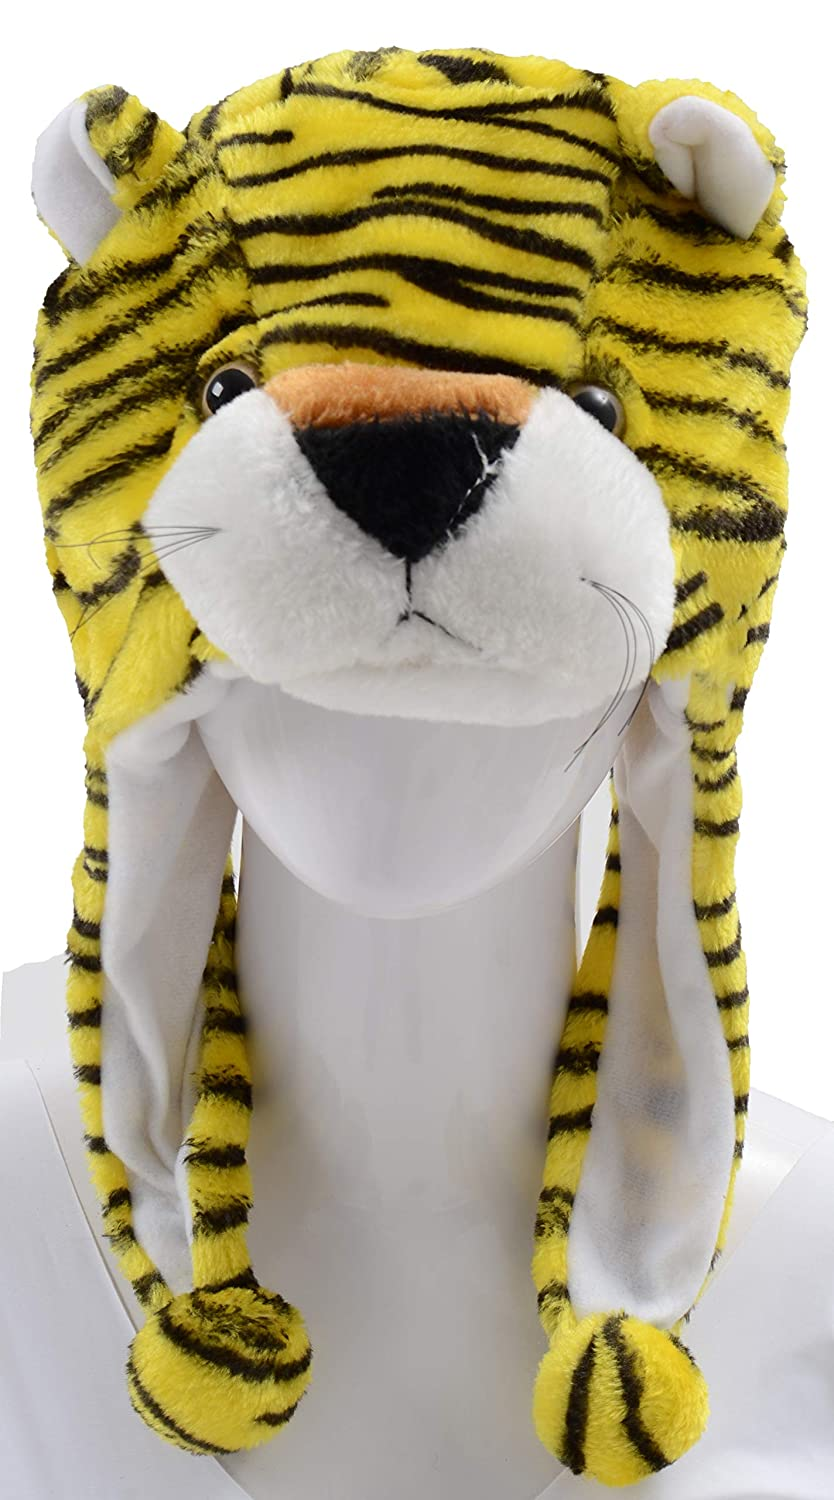 01d5d5152fb Amazon.com  PULAMA Winter Animal Beanie Hat with Free 10 Finger Family  Puppet Toys - Tiger  Clothing